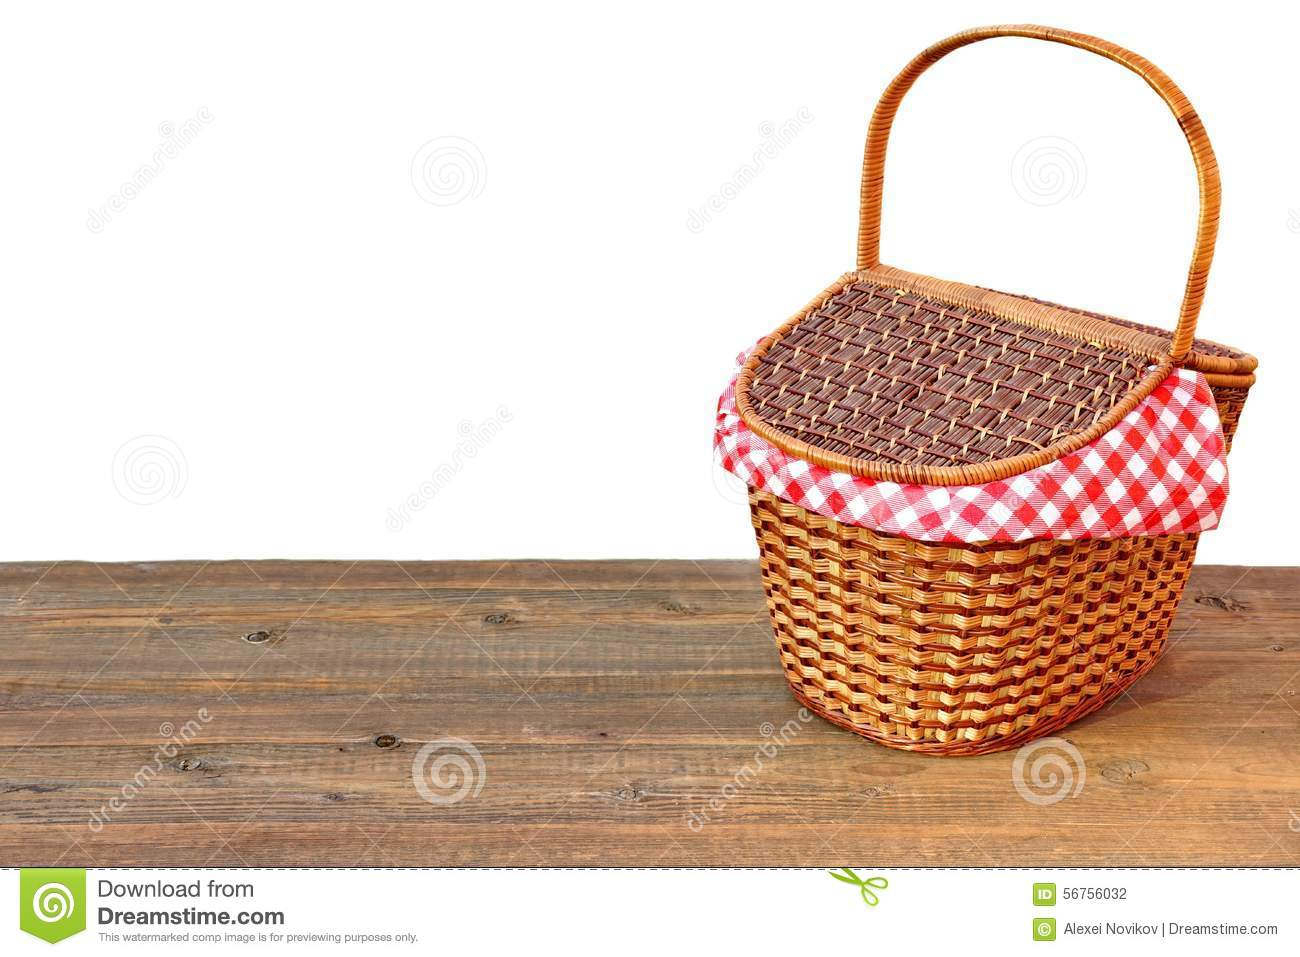 Picnic Basket On The Outdoor Wood Table Isolated Close Up